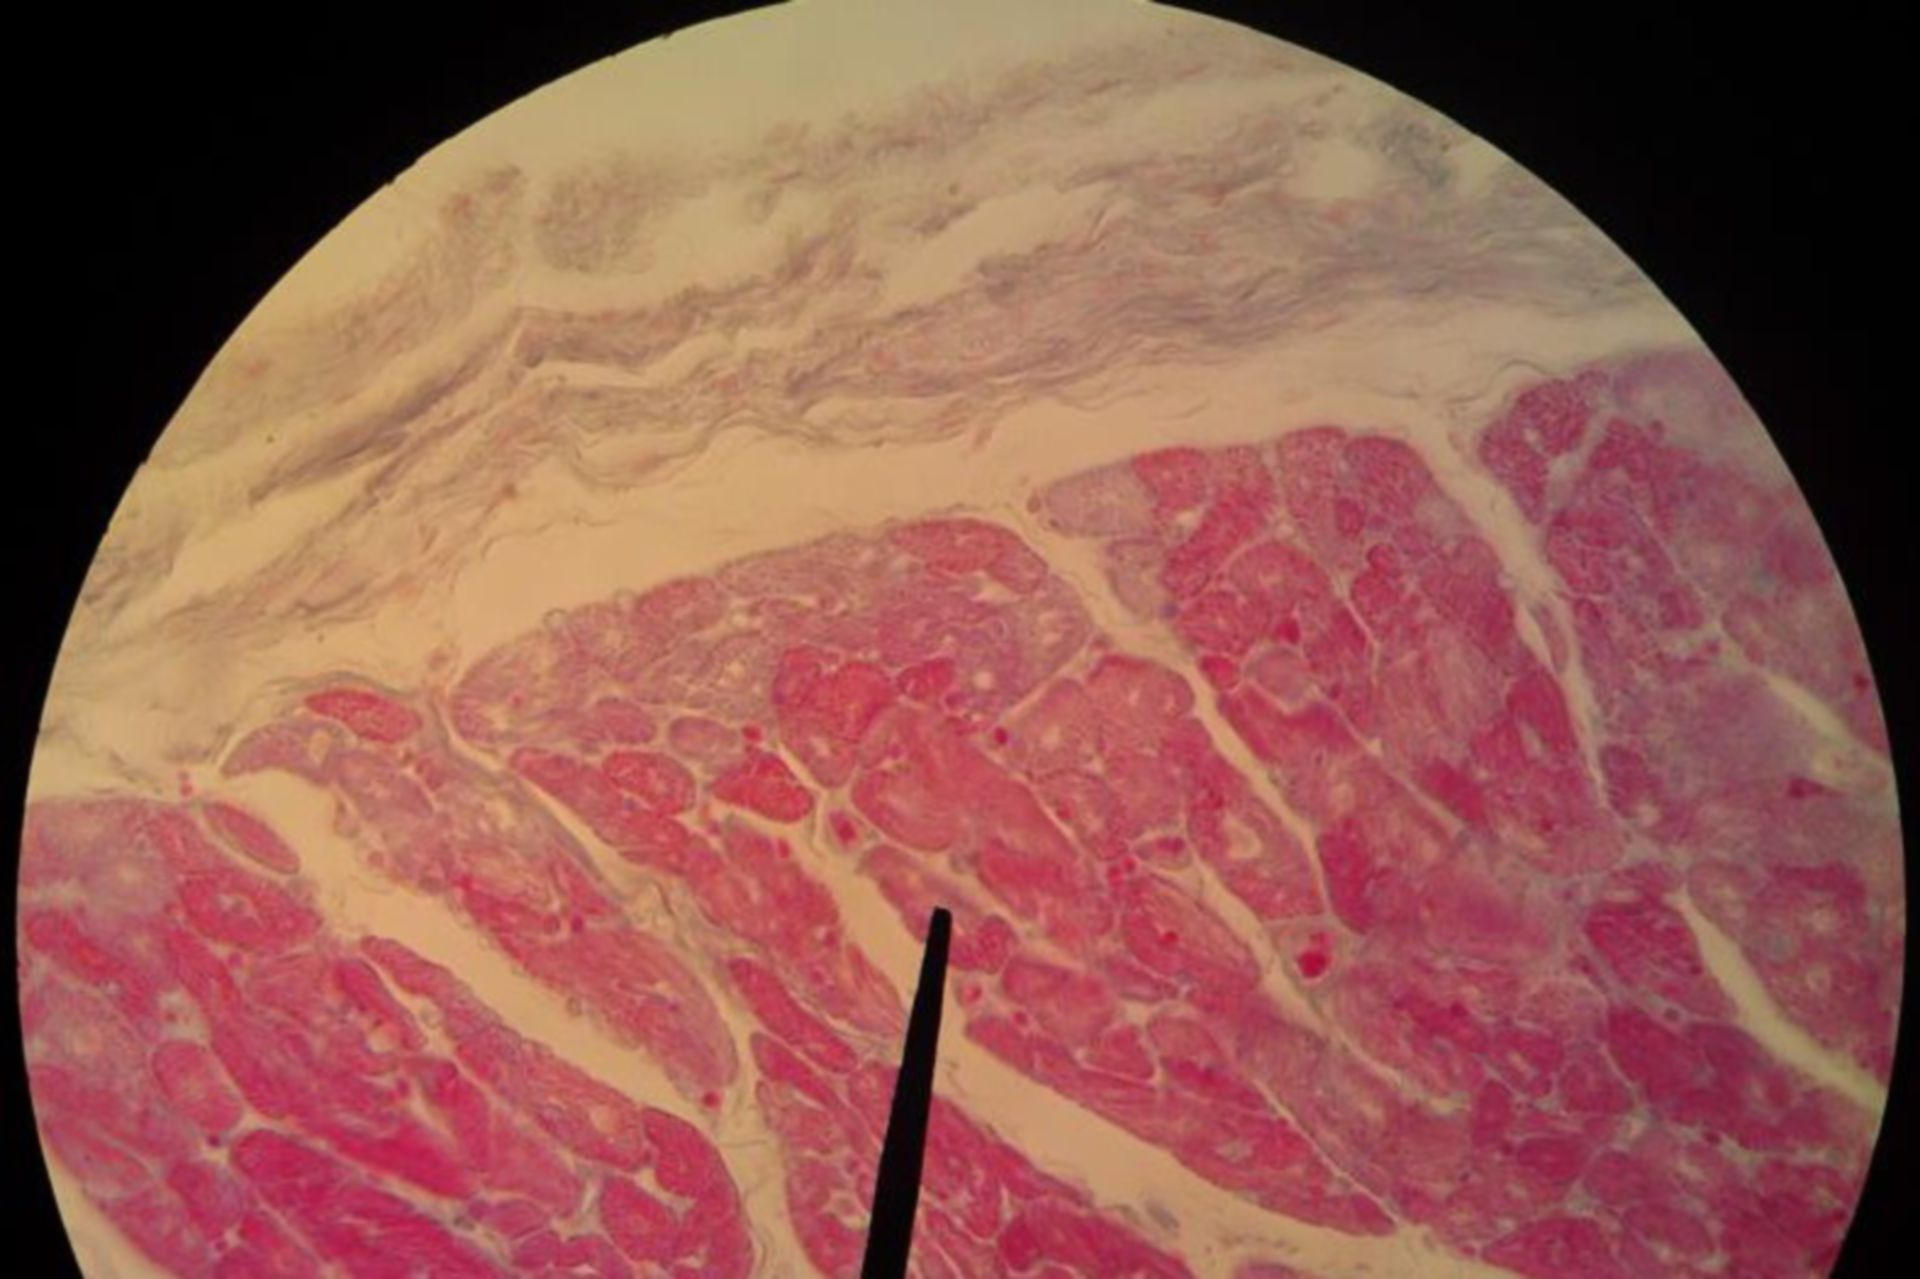 heart muscle-pig